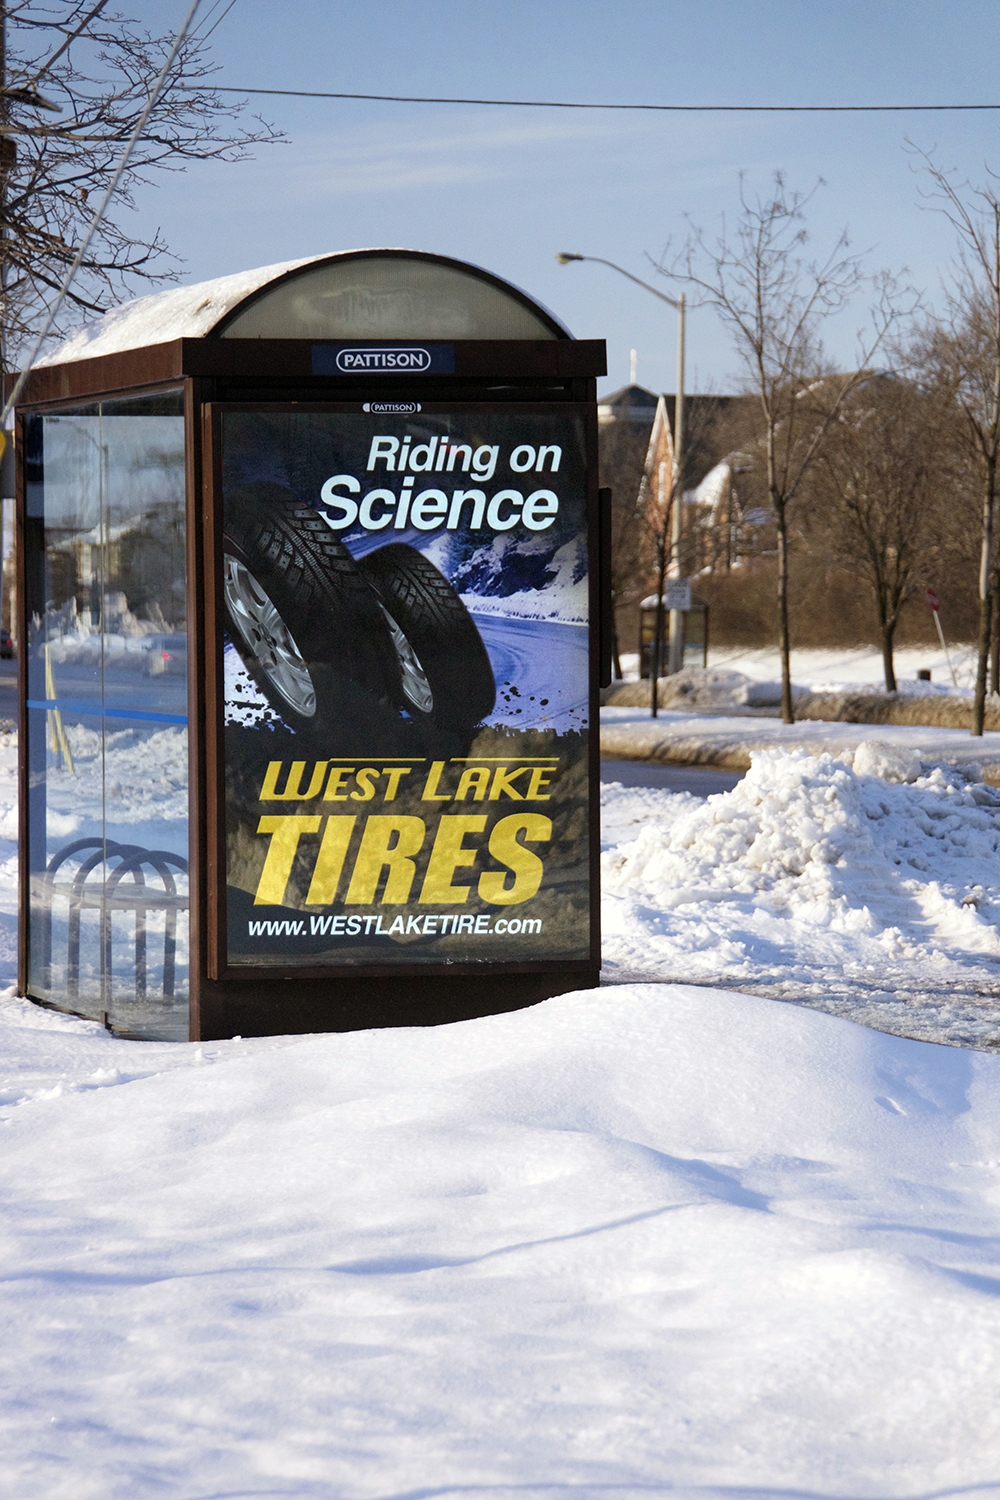 West Lake Tires